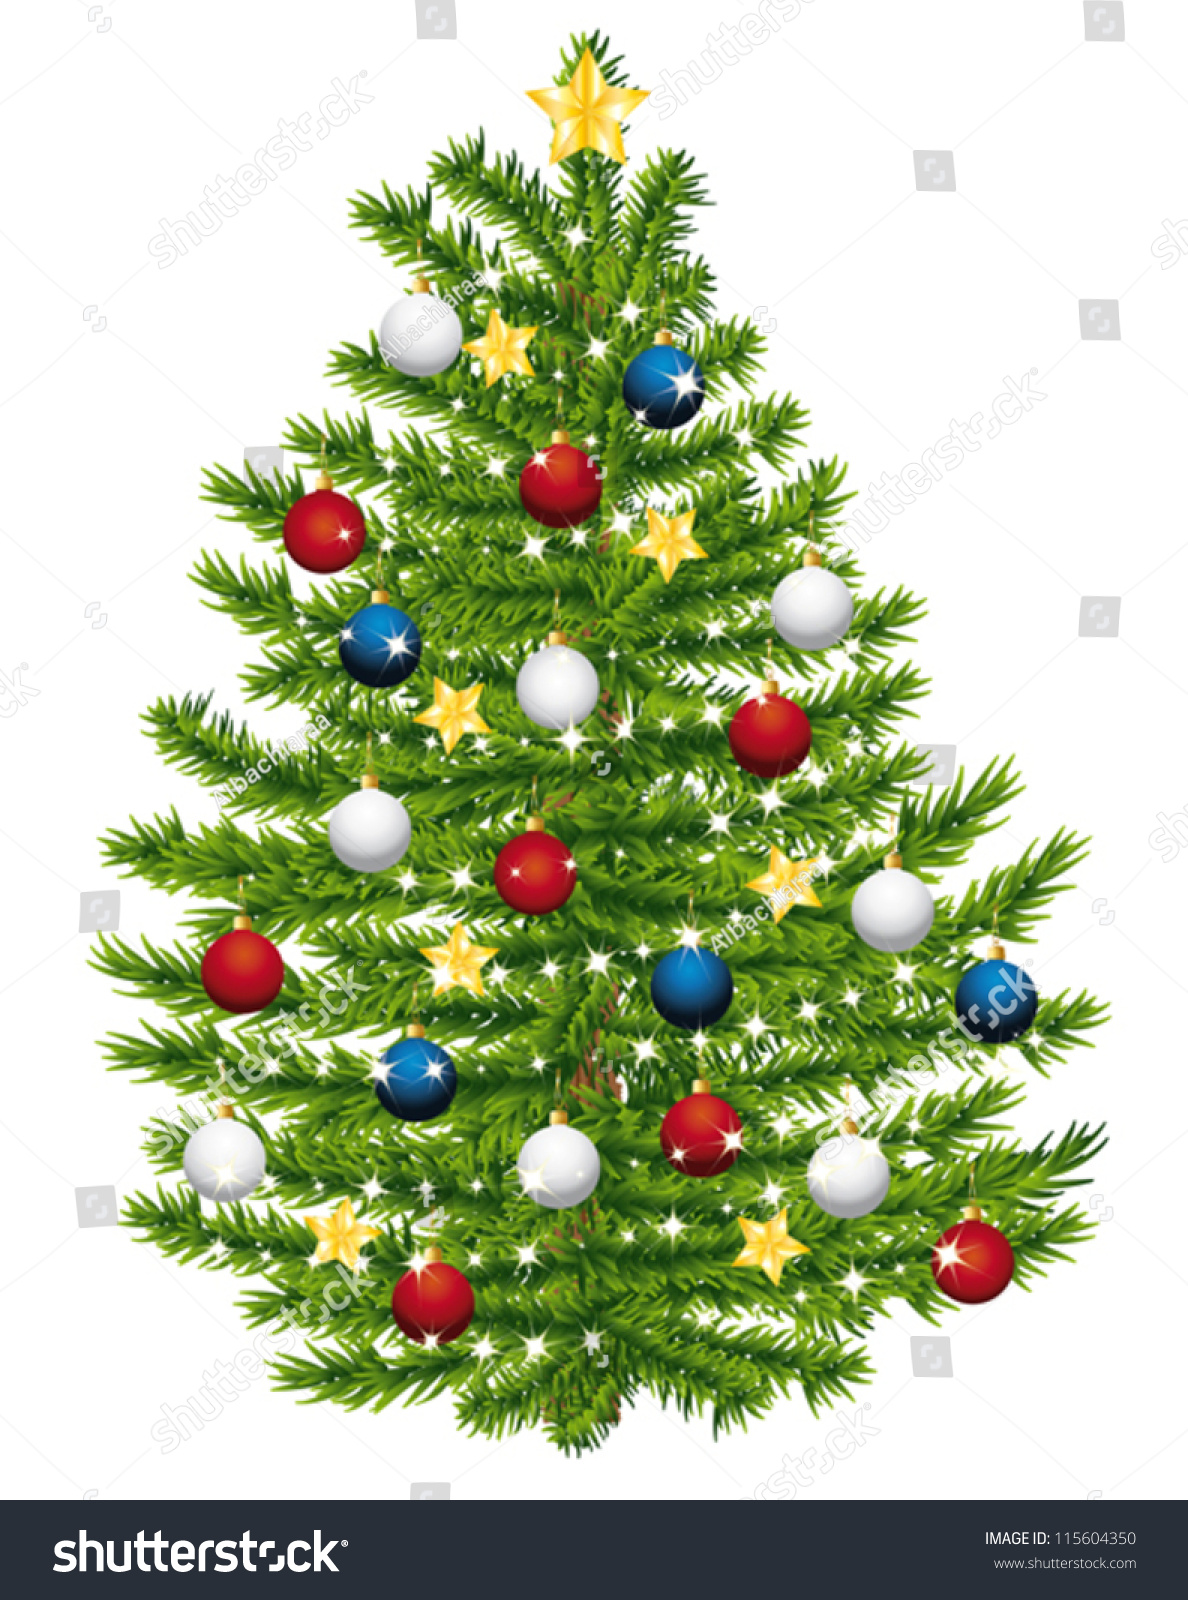 Red white and blue christmas ornaments - Christmas Tree Decorated With Red White And Blue Ornaments Vector Illustration 115604350 Shutterstock